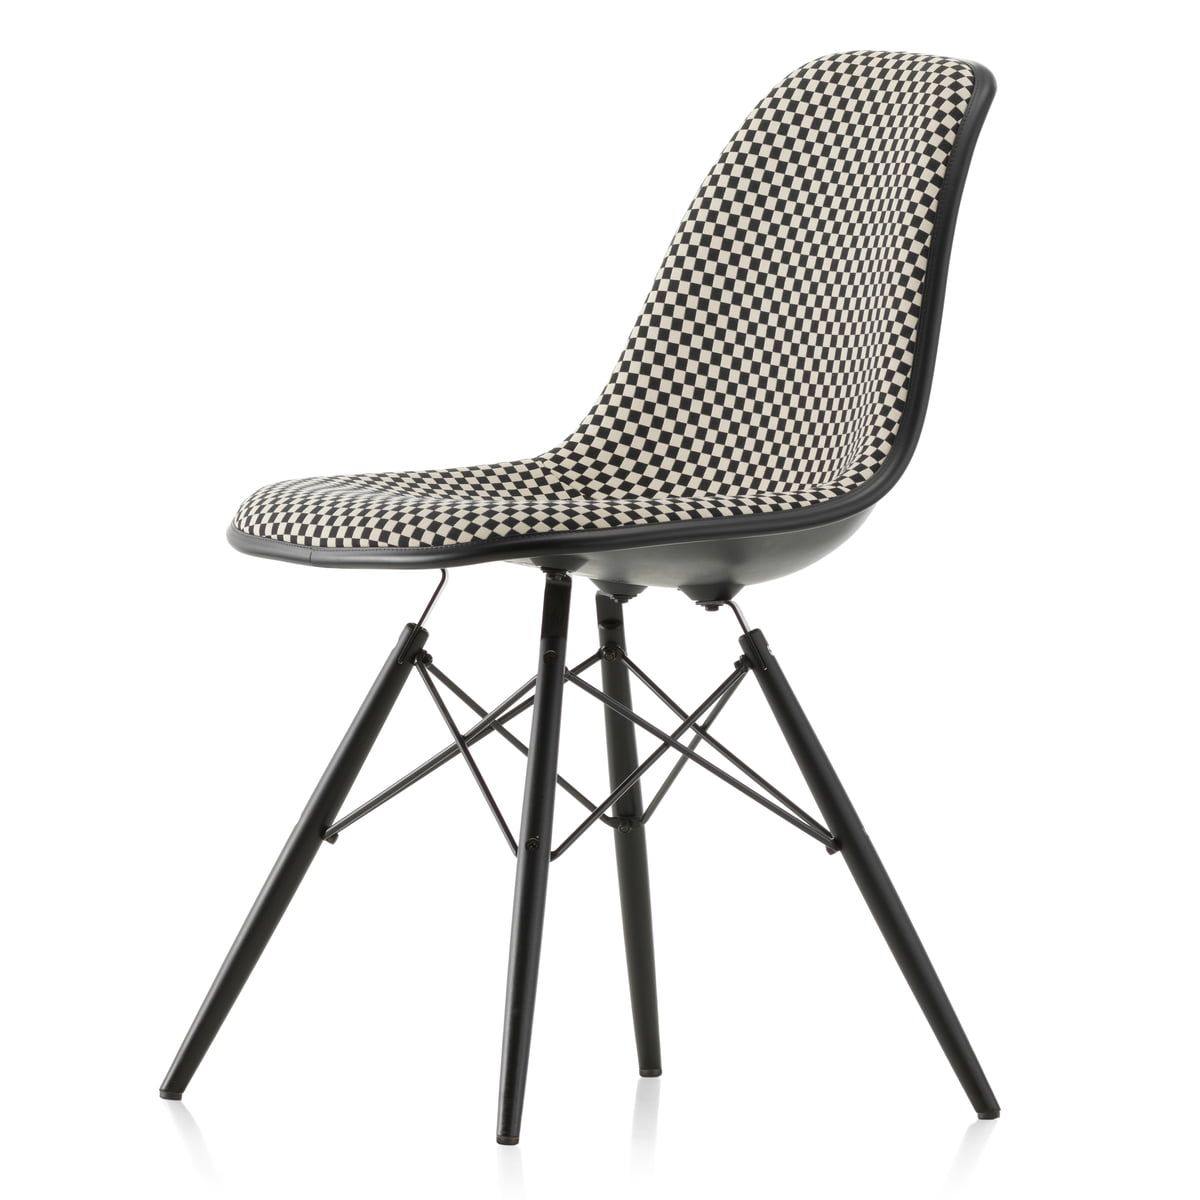 Side Chaise Eames Plastic Vitra Dswrembourrage Complet Chair wvmN0O8n